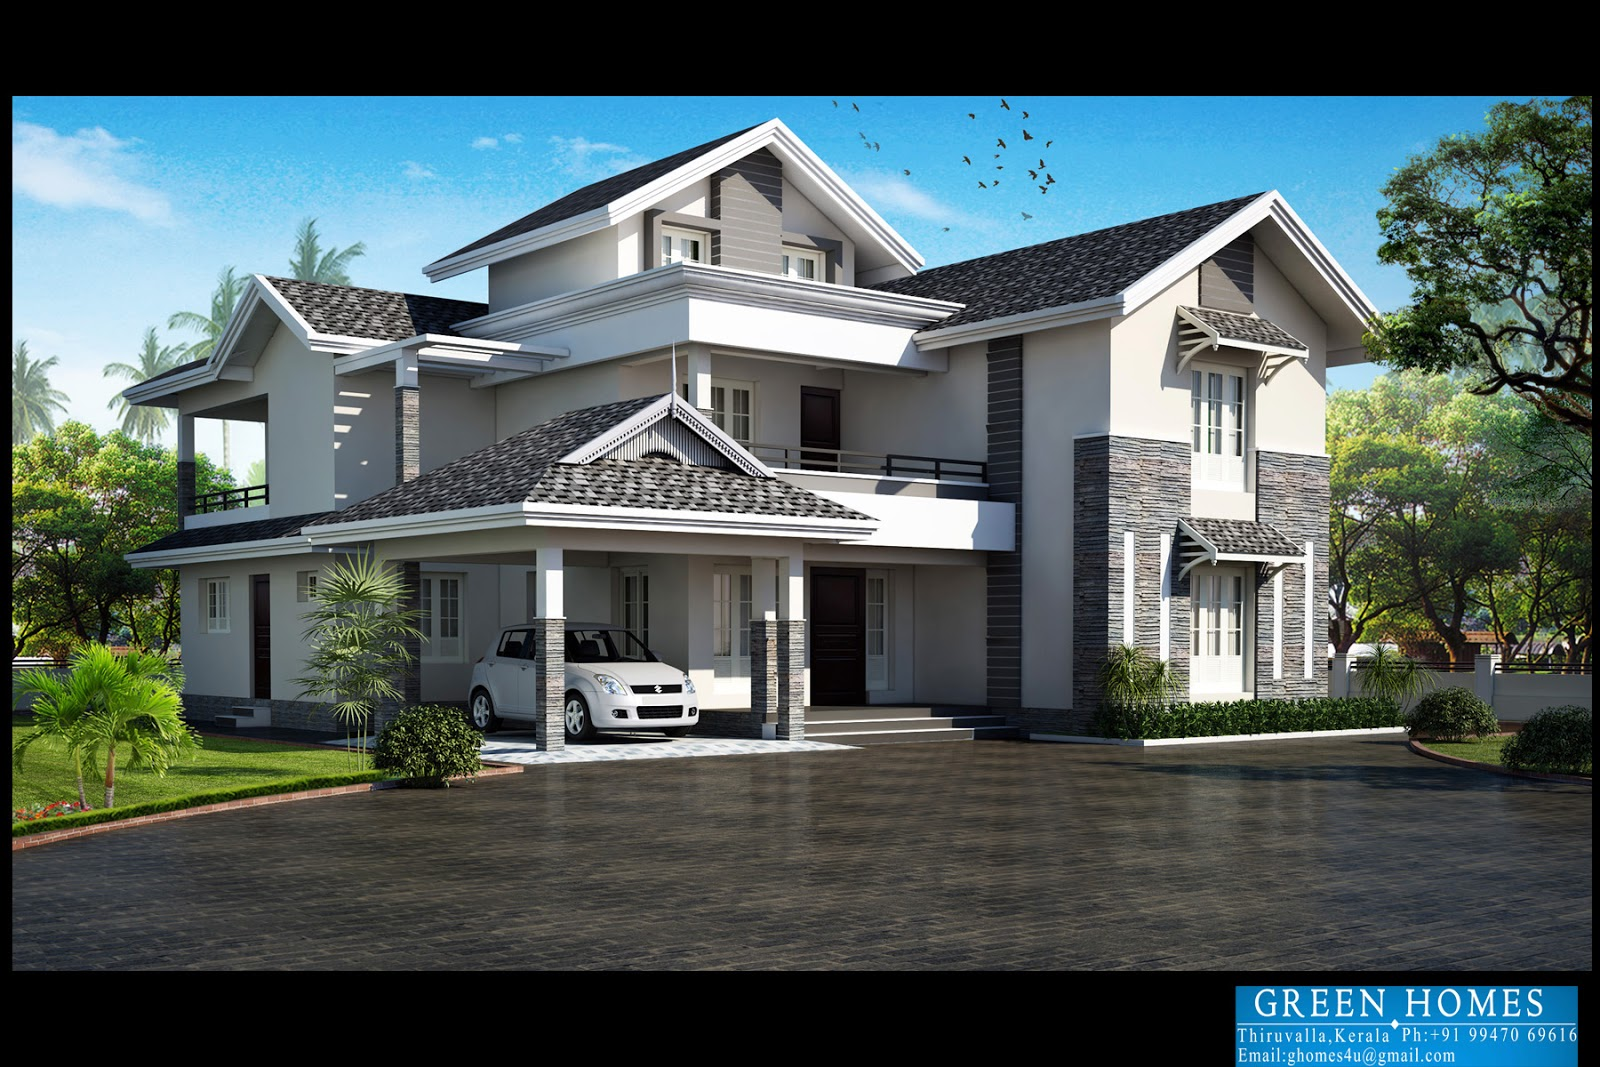 Green homes january 2013 Modern villa plan